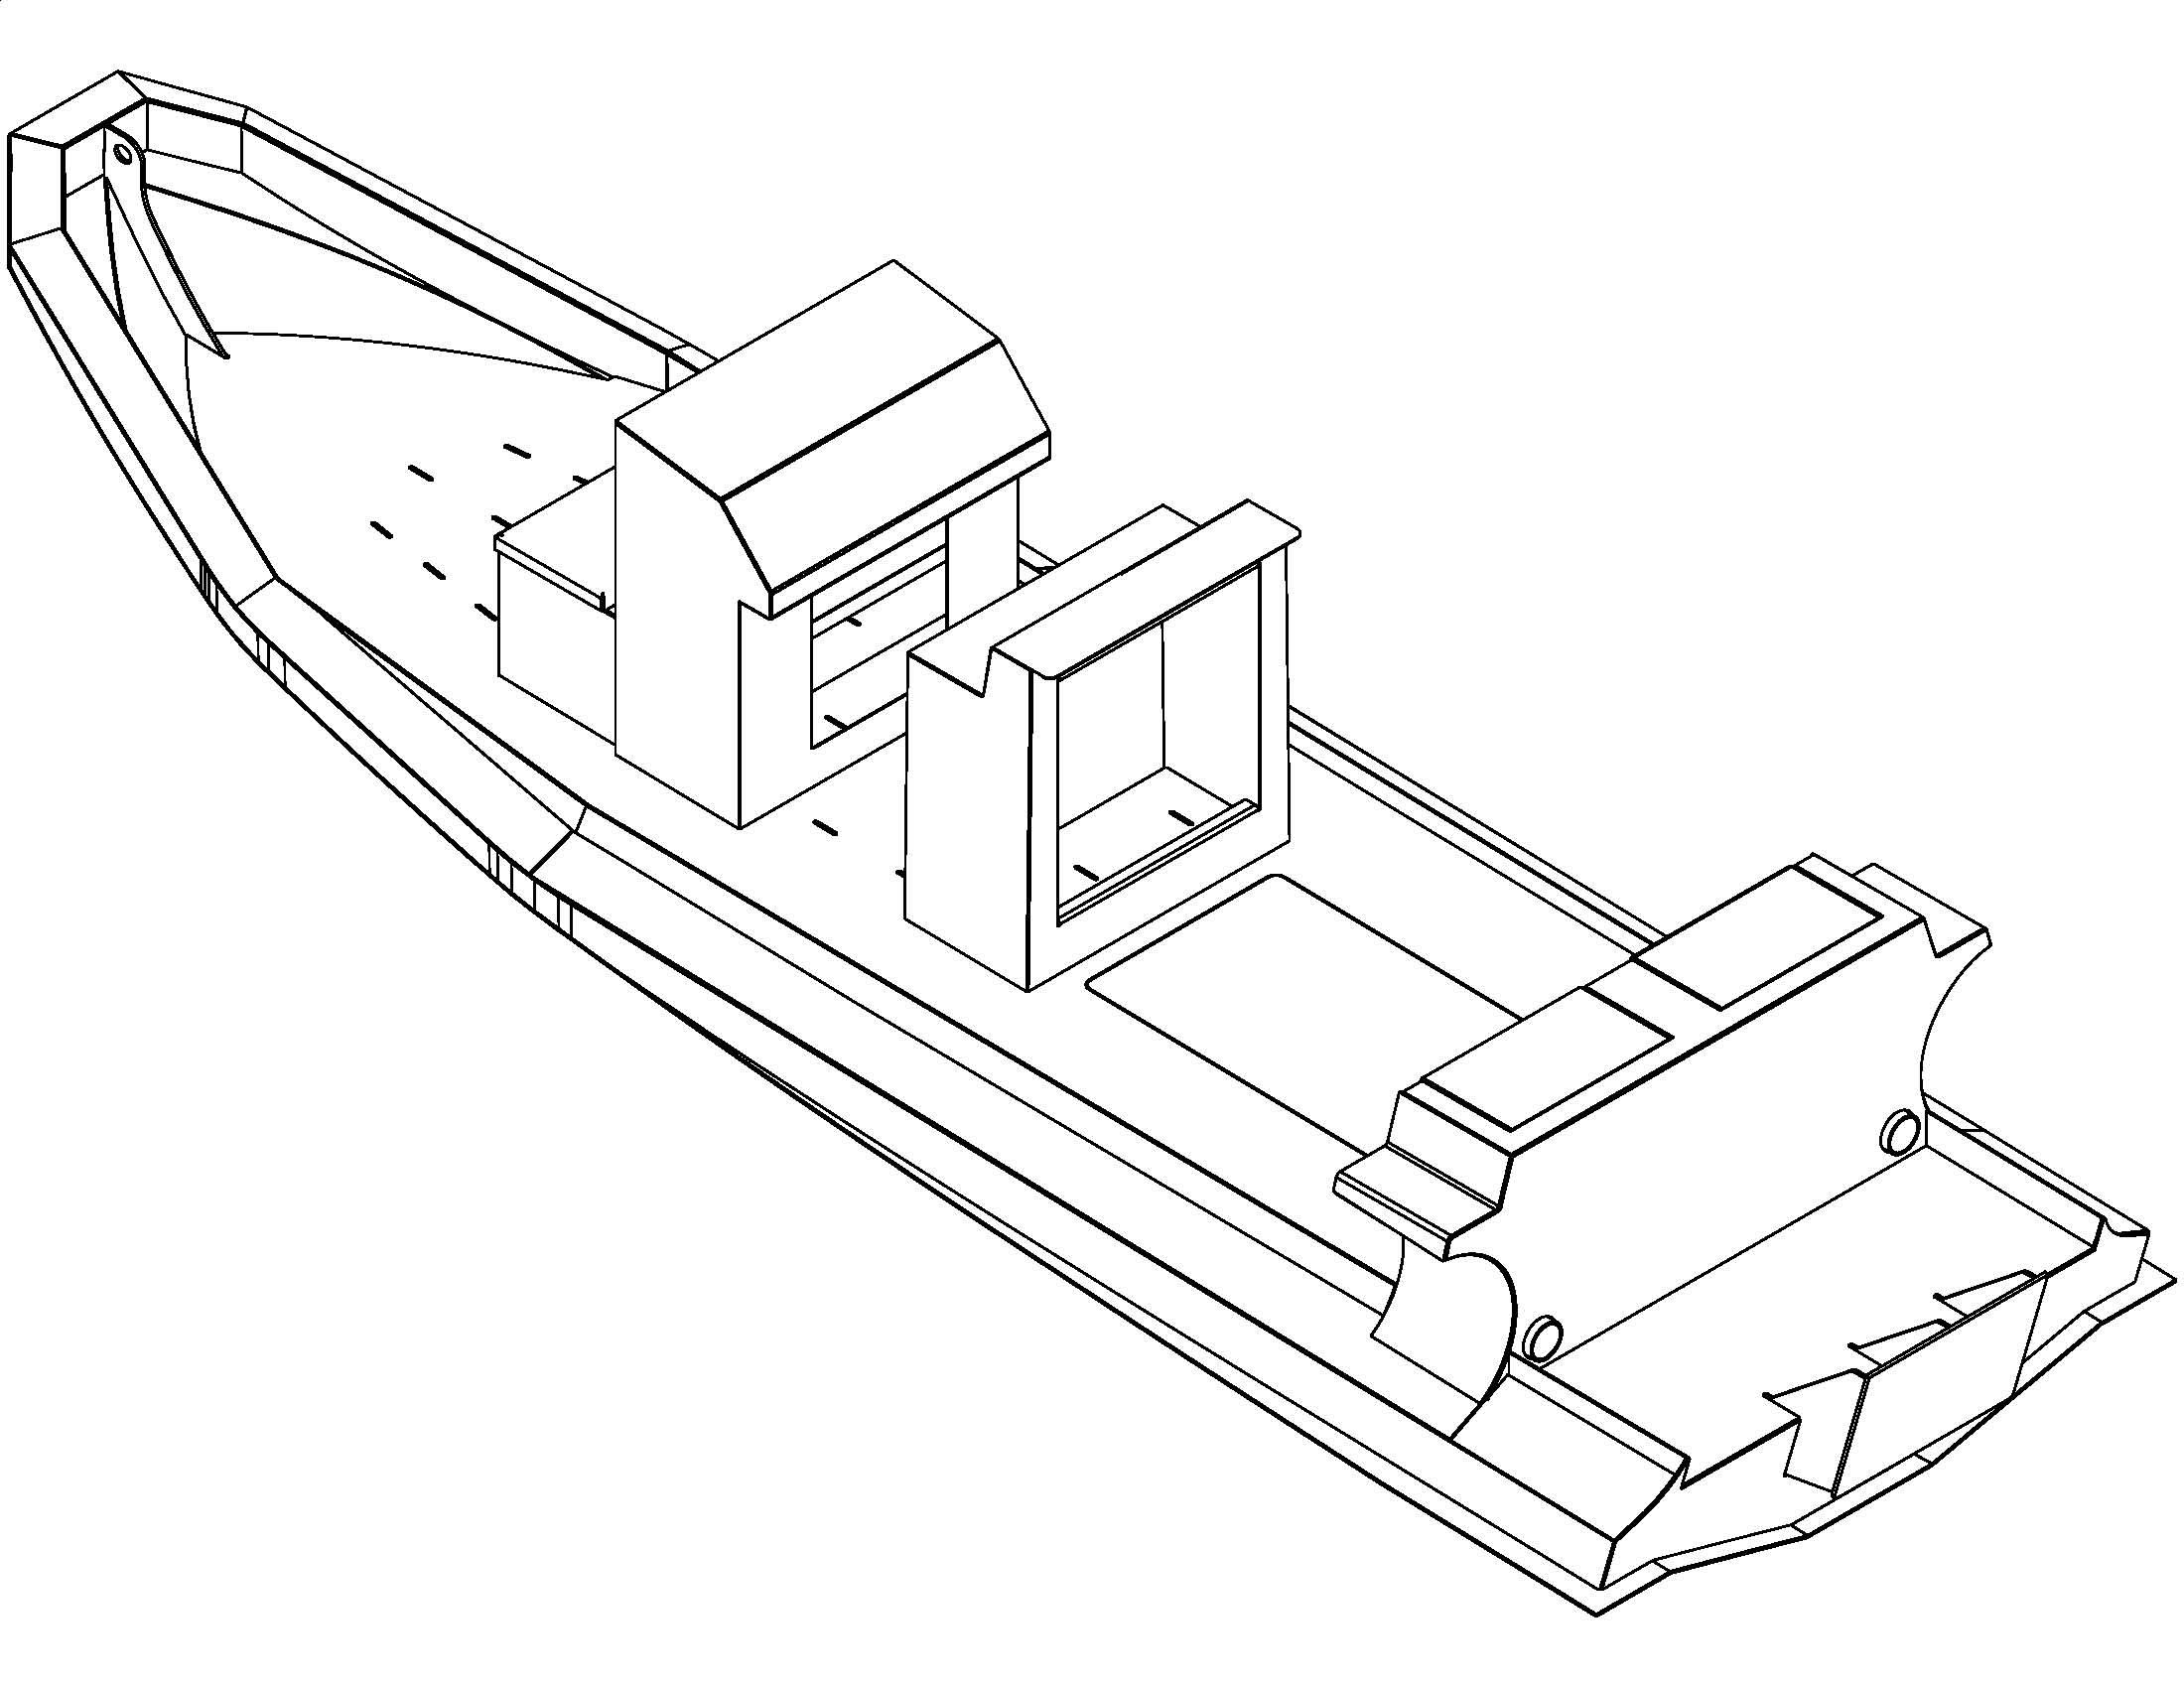 Pontoon Boat Drawing At Free For Personal Use Crestliner Wiring Diagram 2200x1700 Aluminum Rib Plans